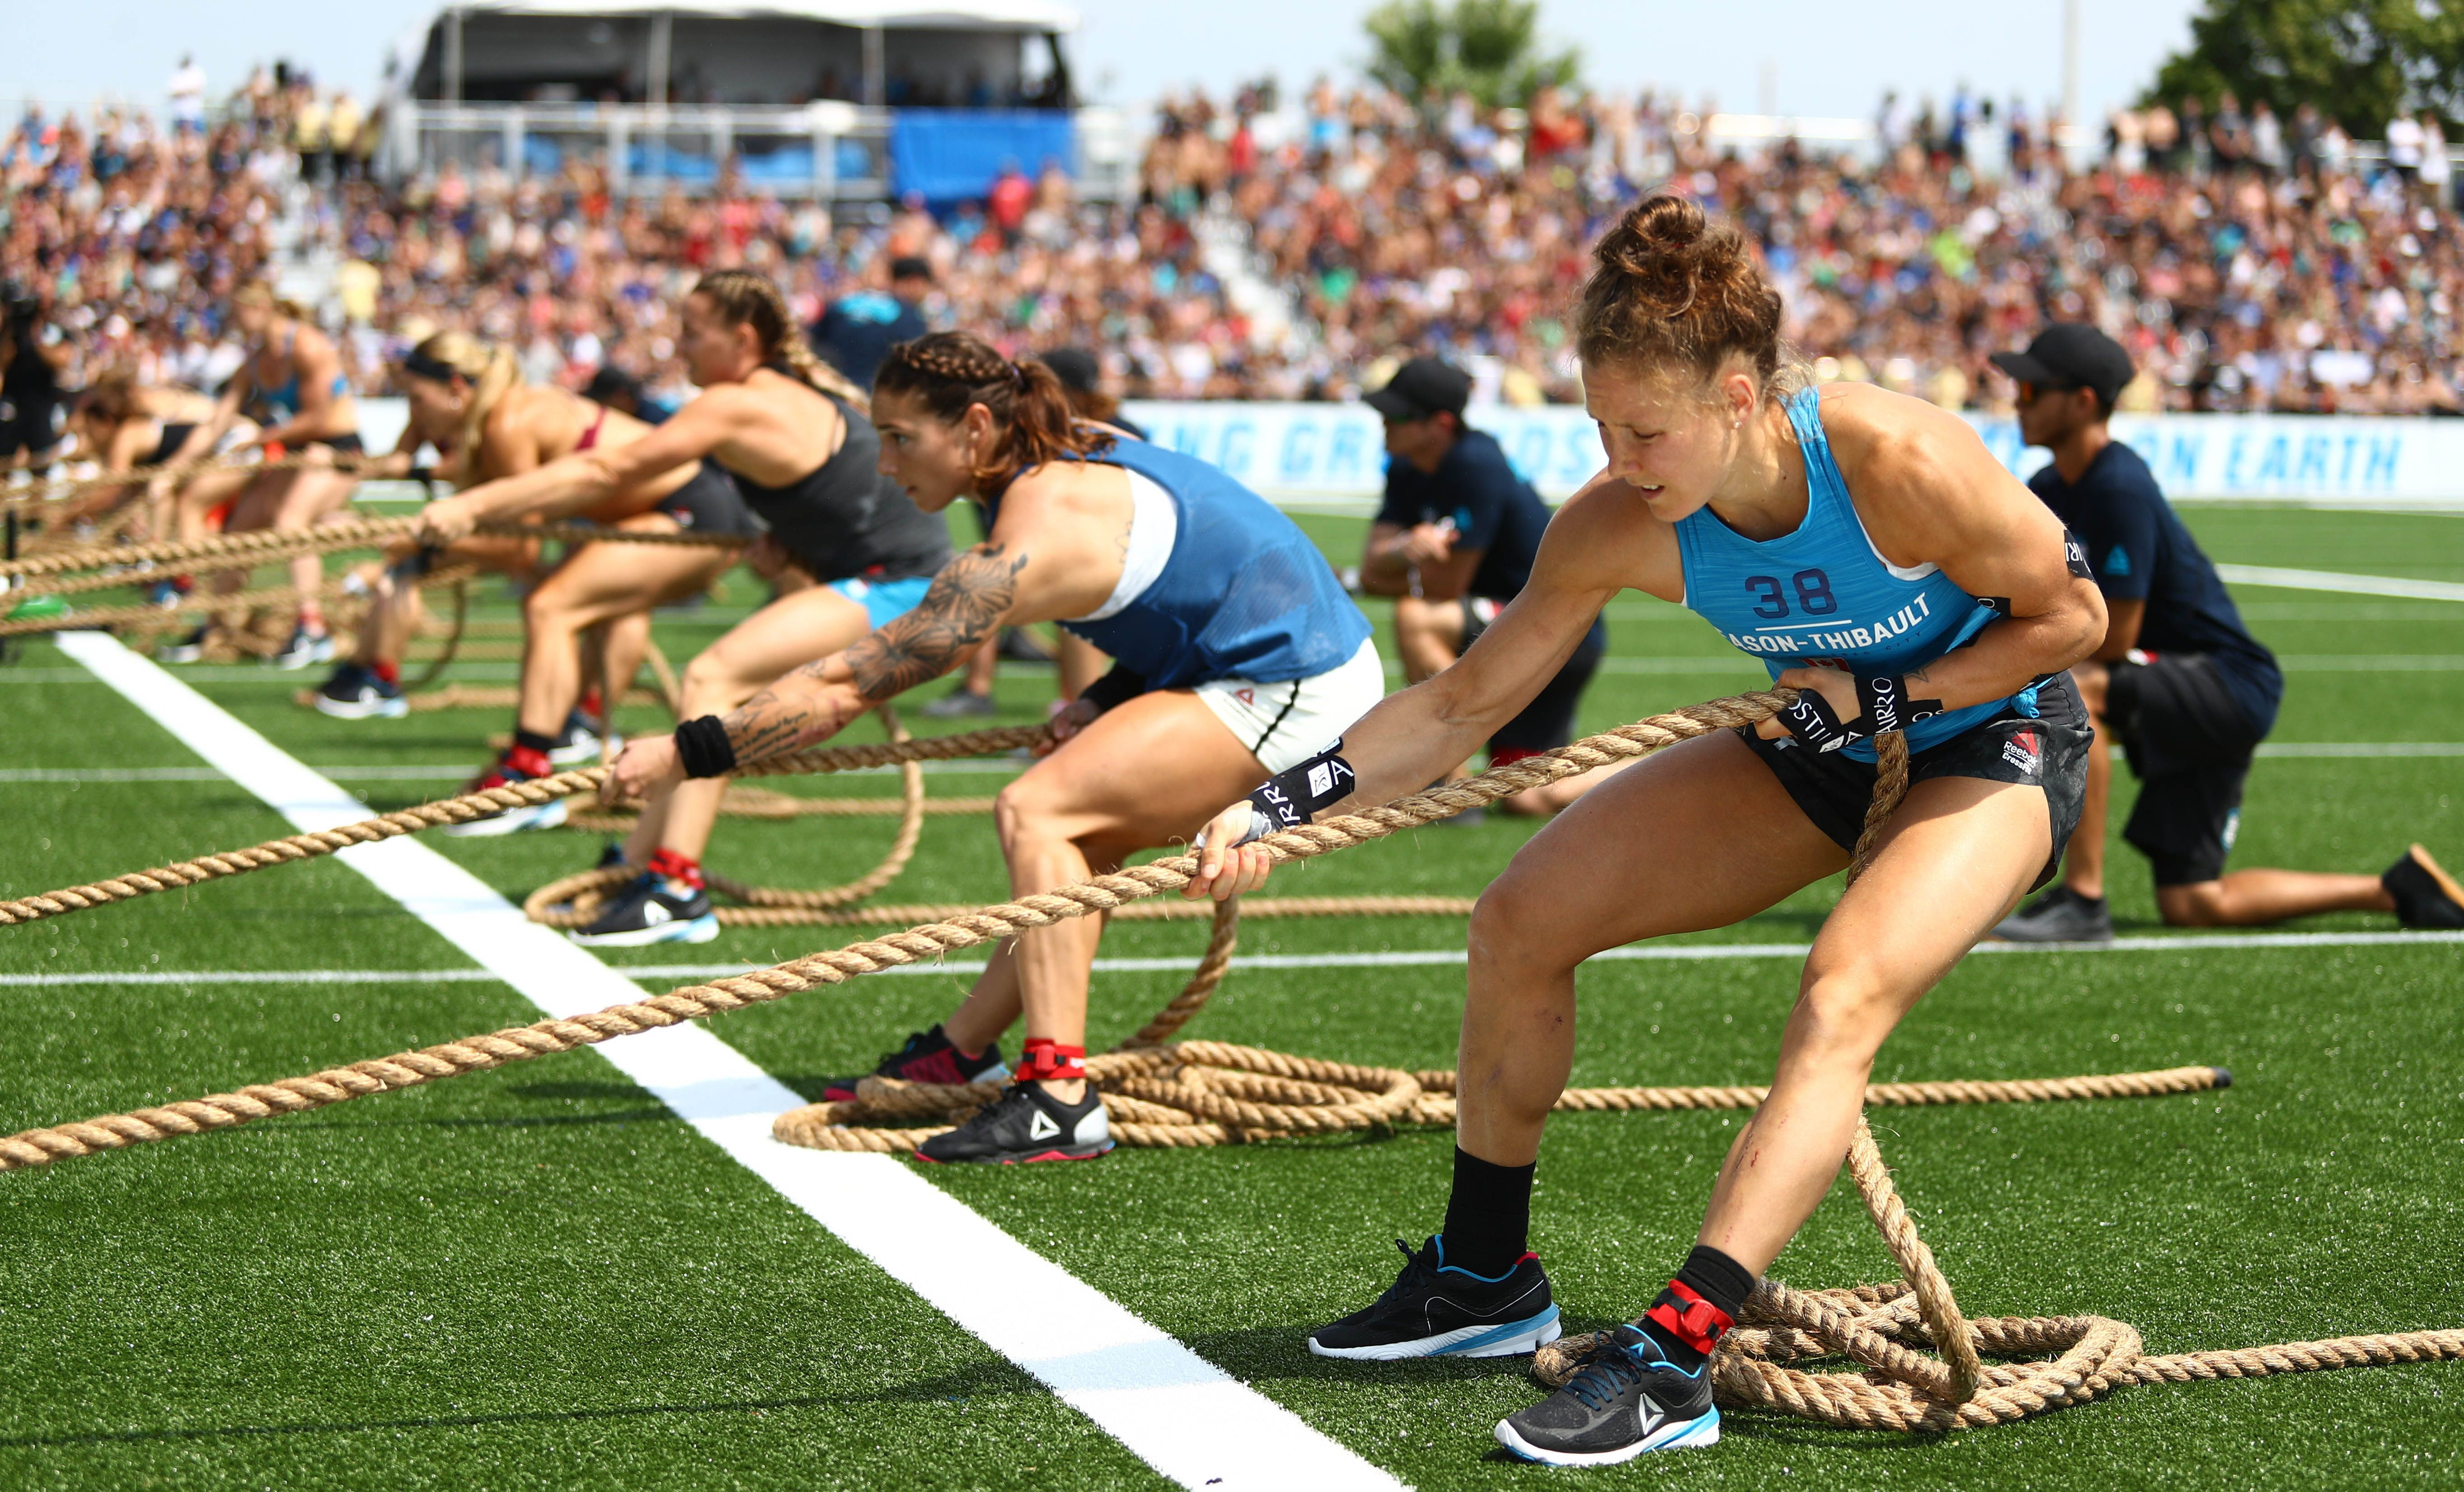 Crossfit Games 2019 5 Of The Best Female Athletes To Watch Crossfit, forging elite fitness, 3.2.1.go!, fittest on earth and sport of fitness are trademarks of crossfit, llc. men s health